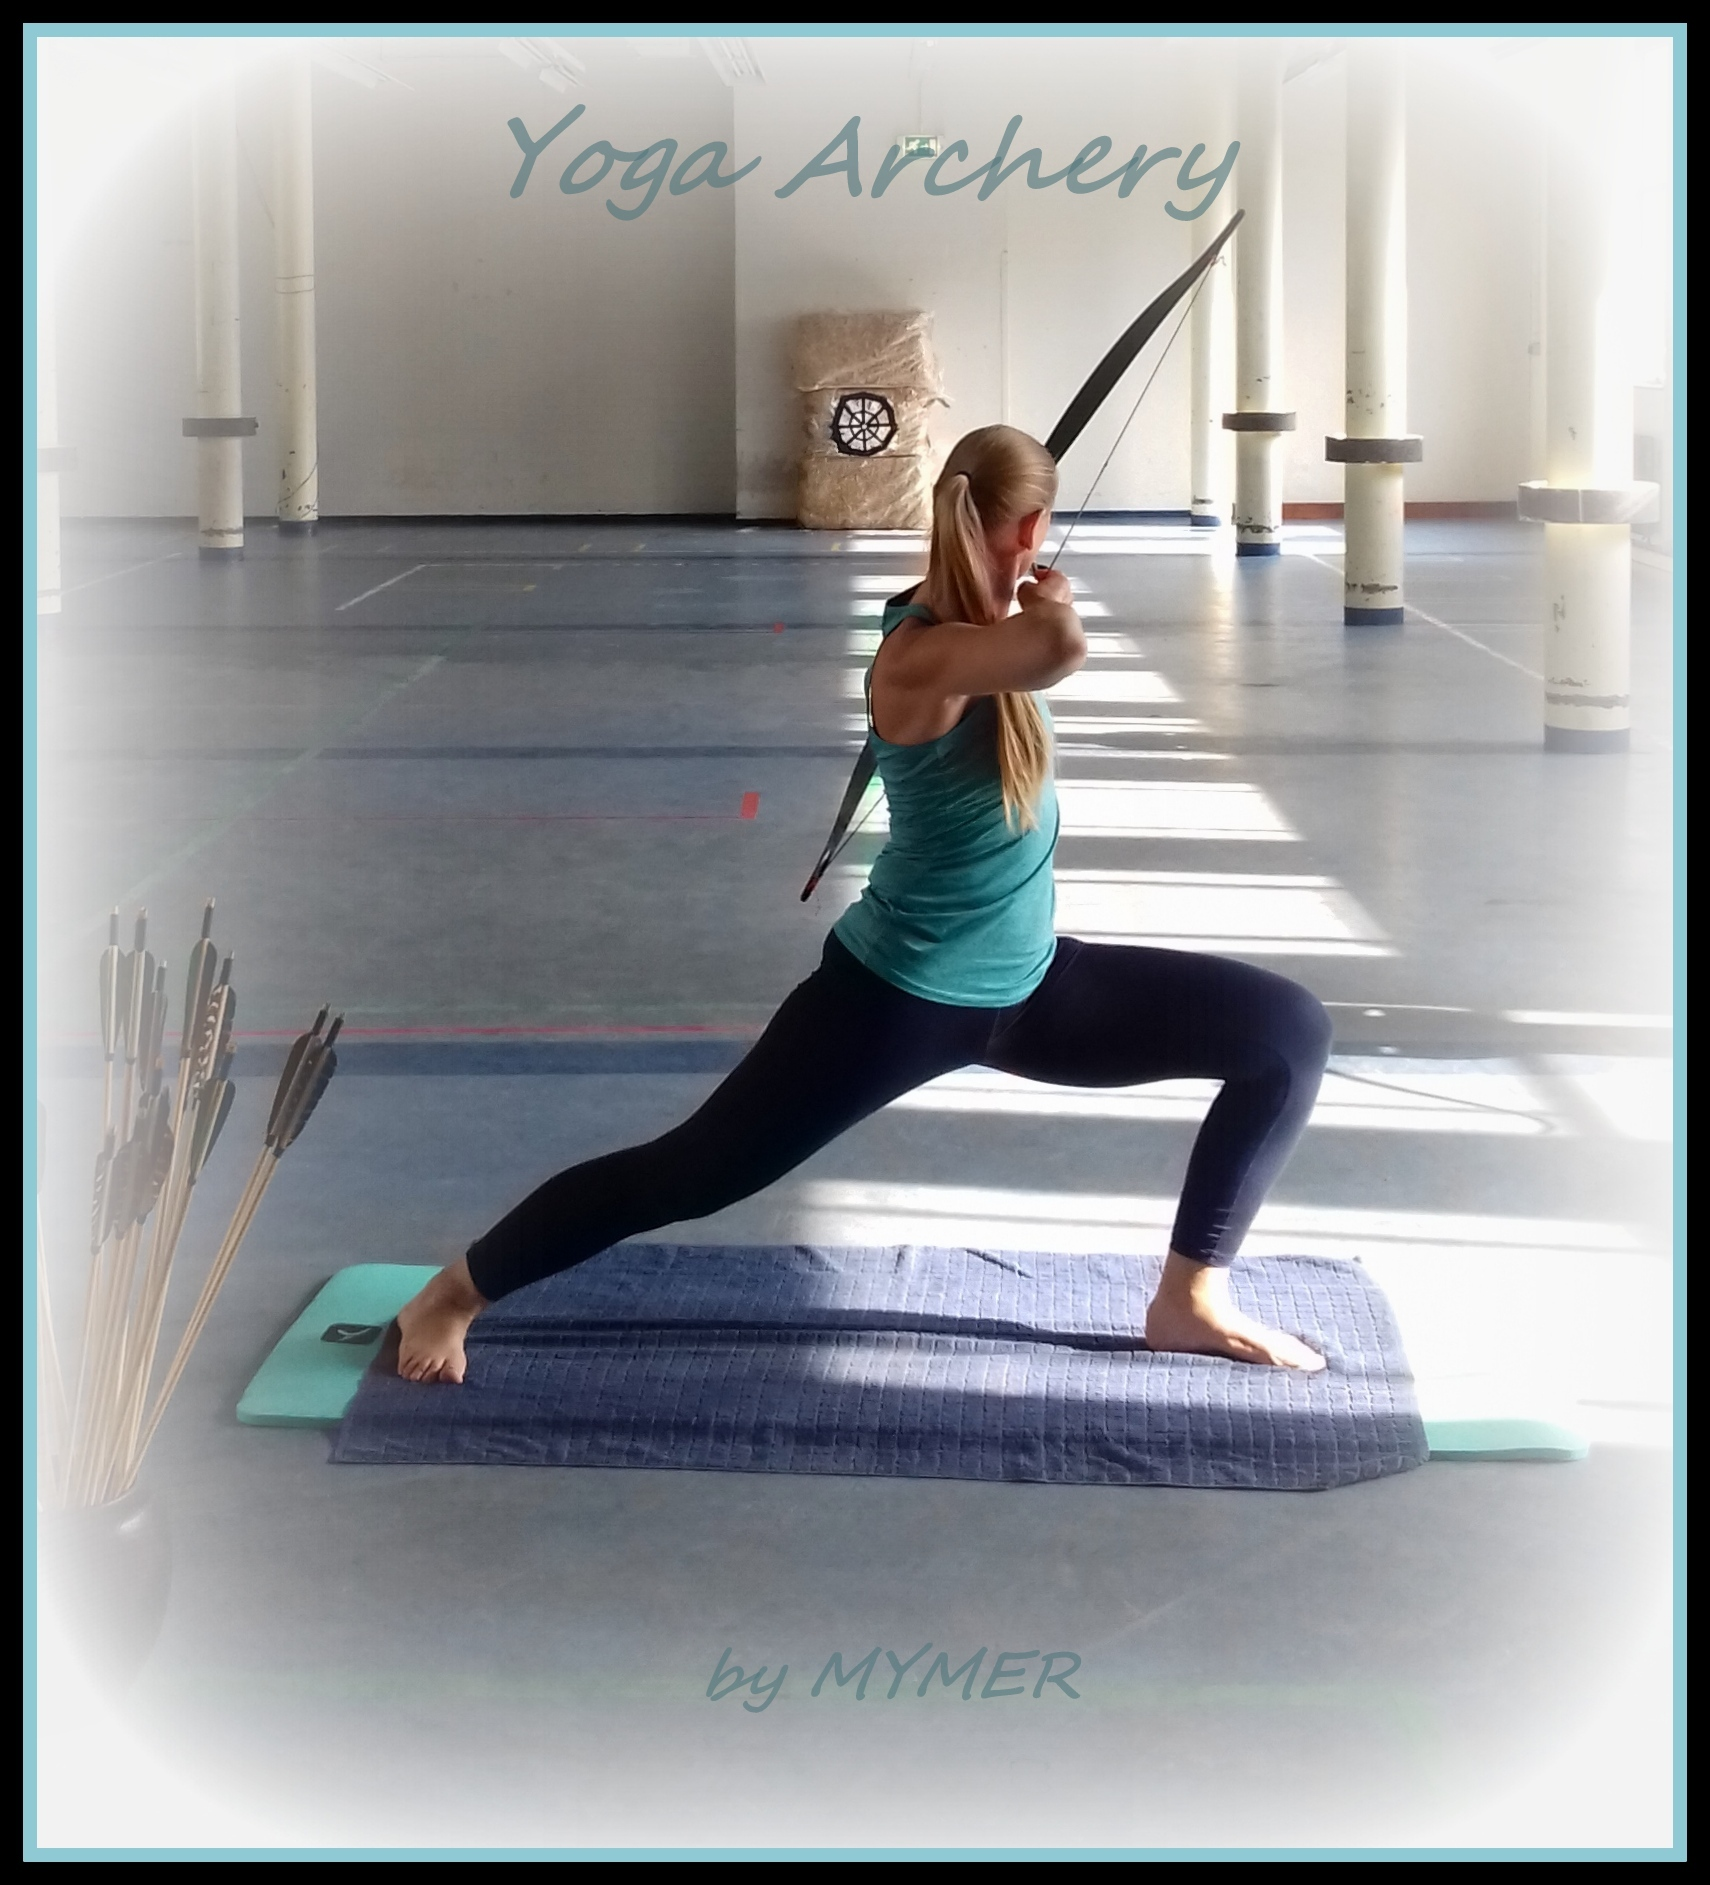 yoga-archery-mymer-worrior-twist